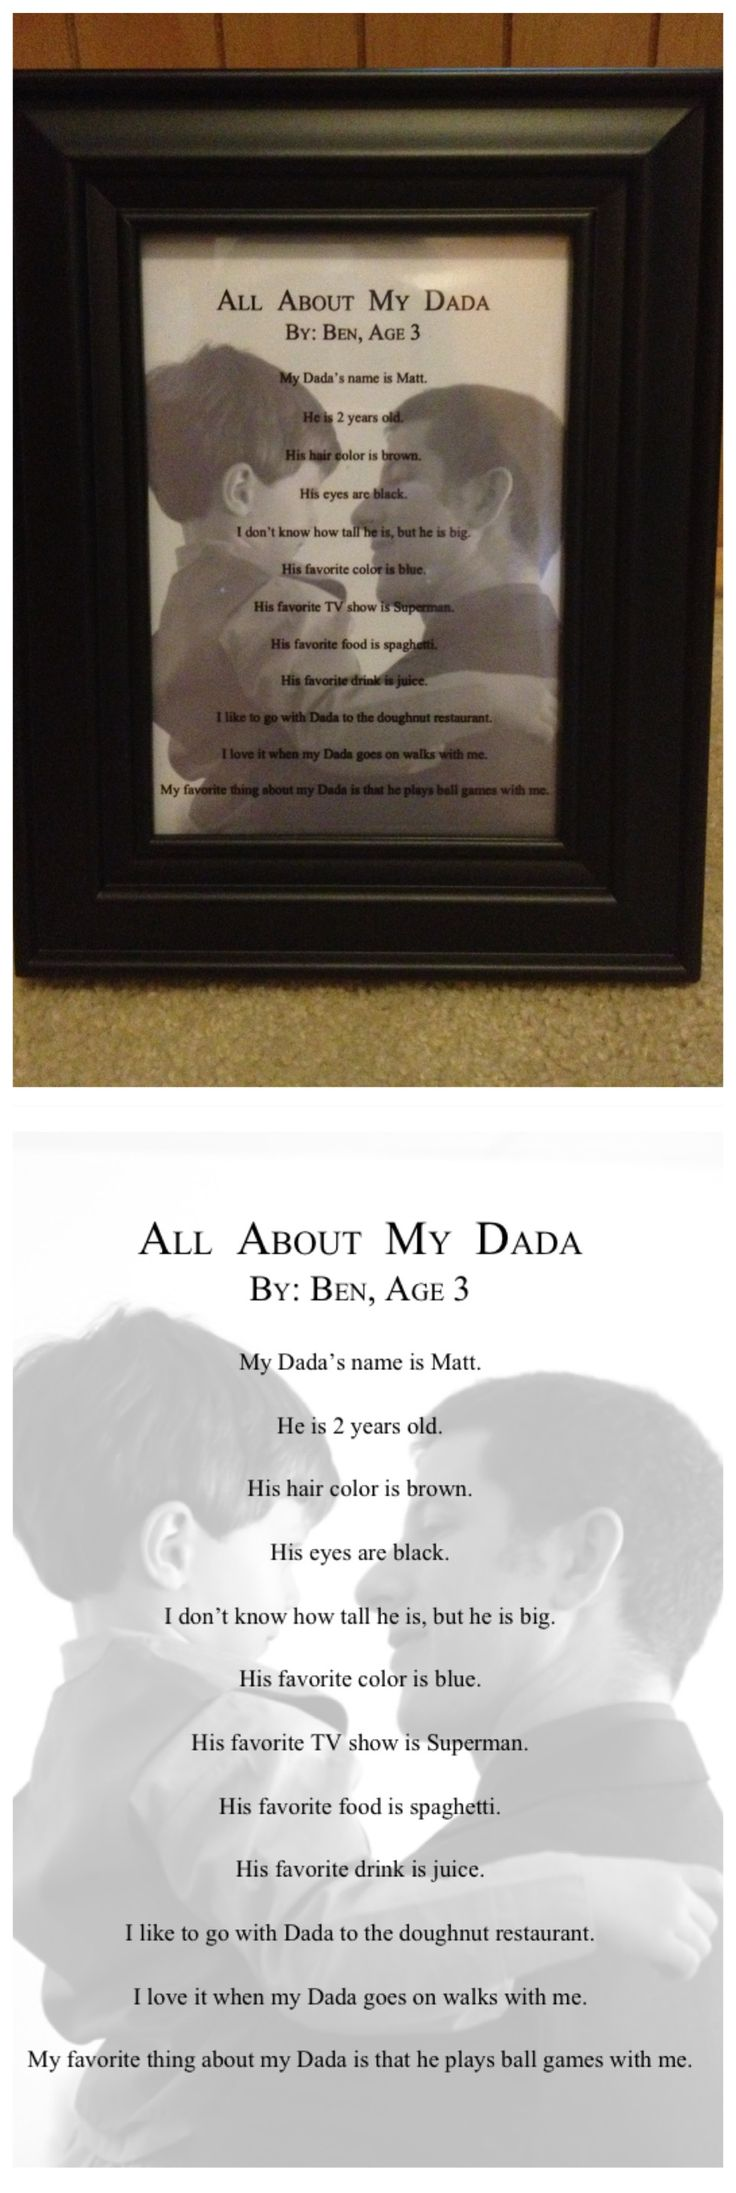 Birthday gift for my husband.  Would have made a good Father's Day gift too.  Our son only answered his name and hair color correctly, but it makes it very cute/funny and will be a great memento.